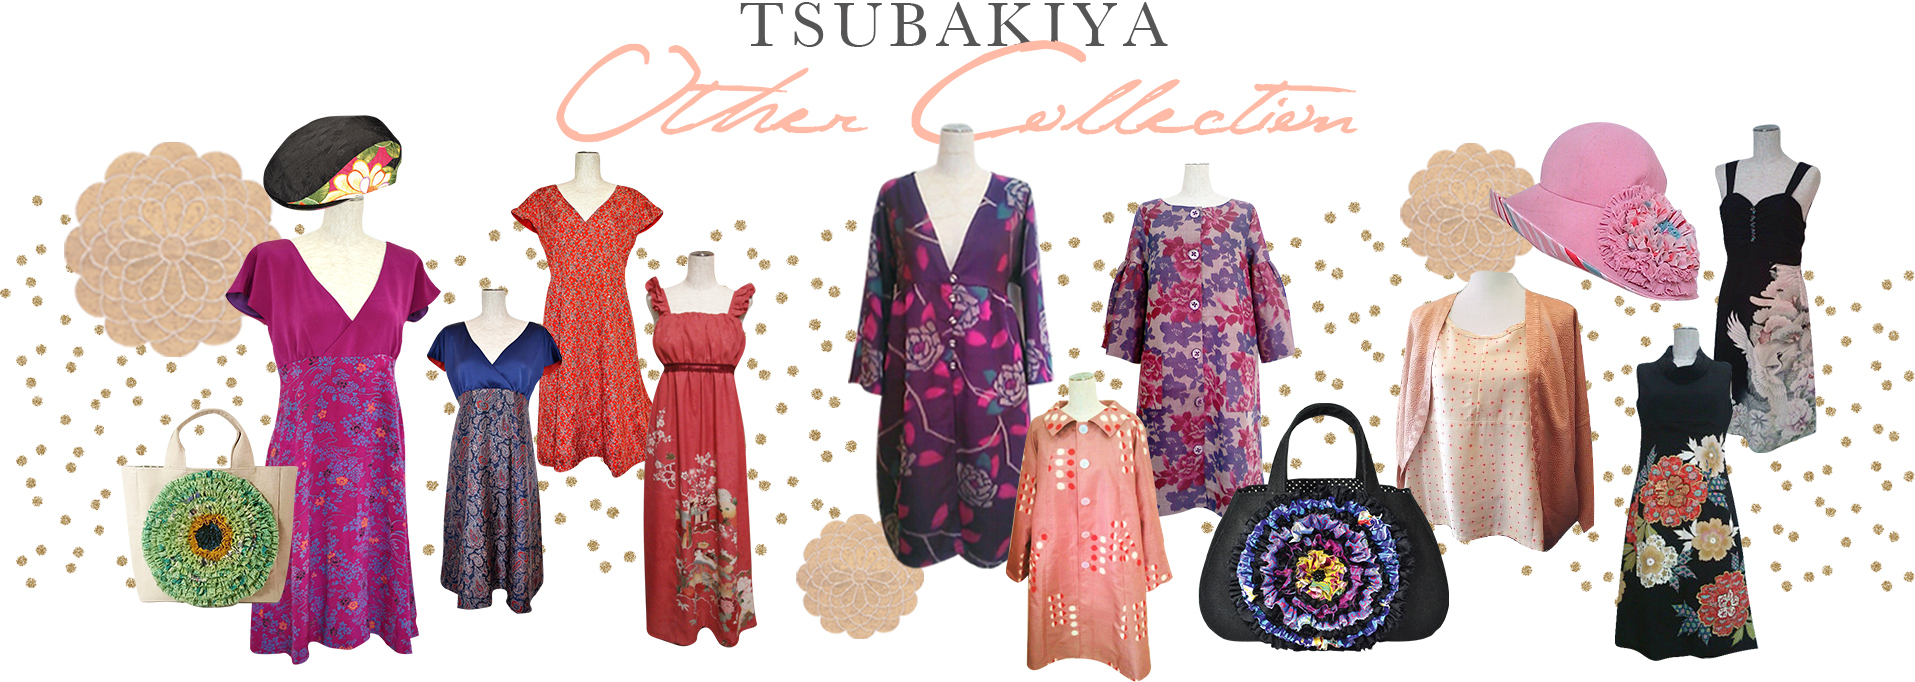 TSUBAKIYA Other Collection